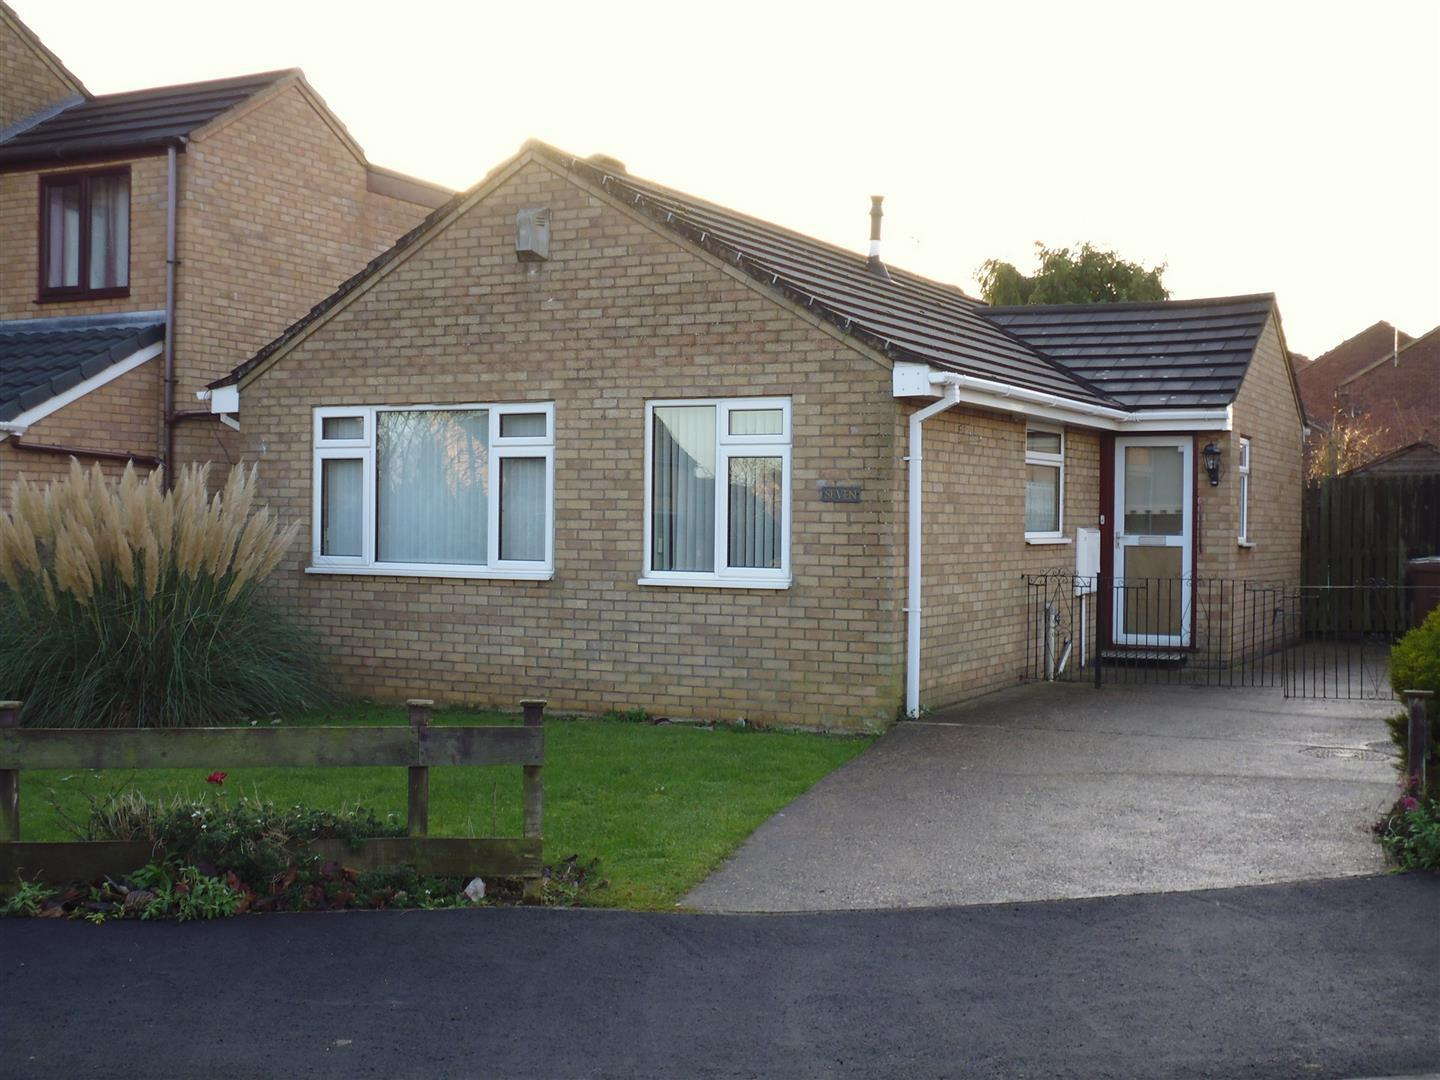 2 Bedrooms Property for sale in Atwater Grove, Lincoln